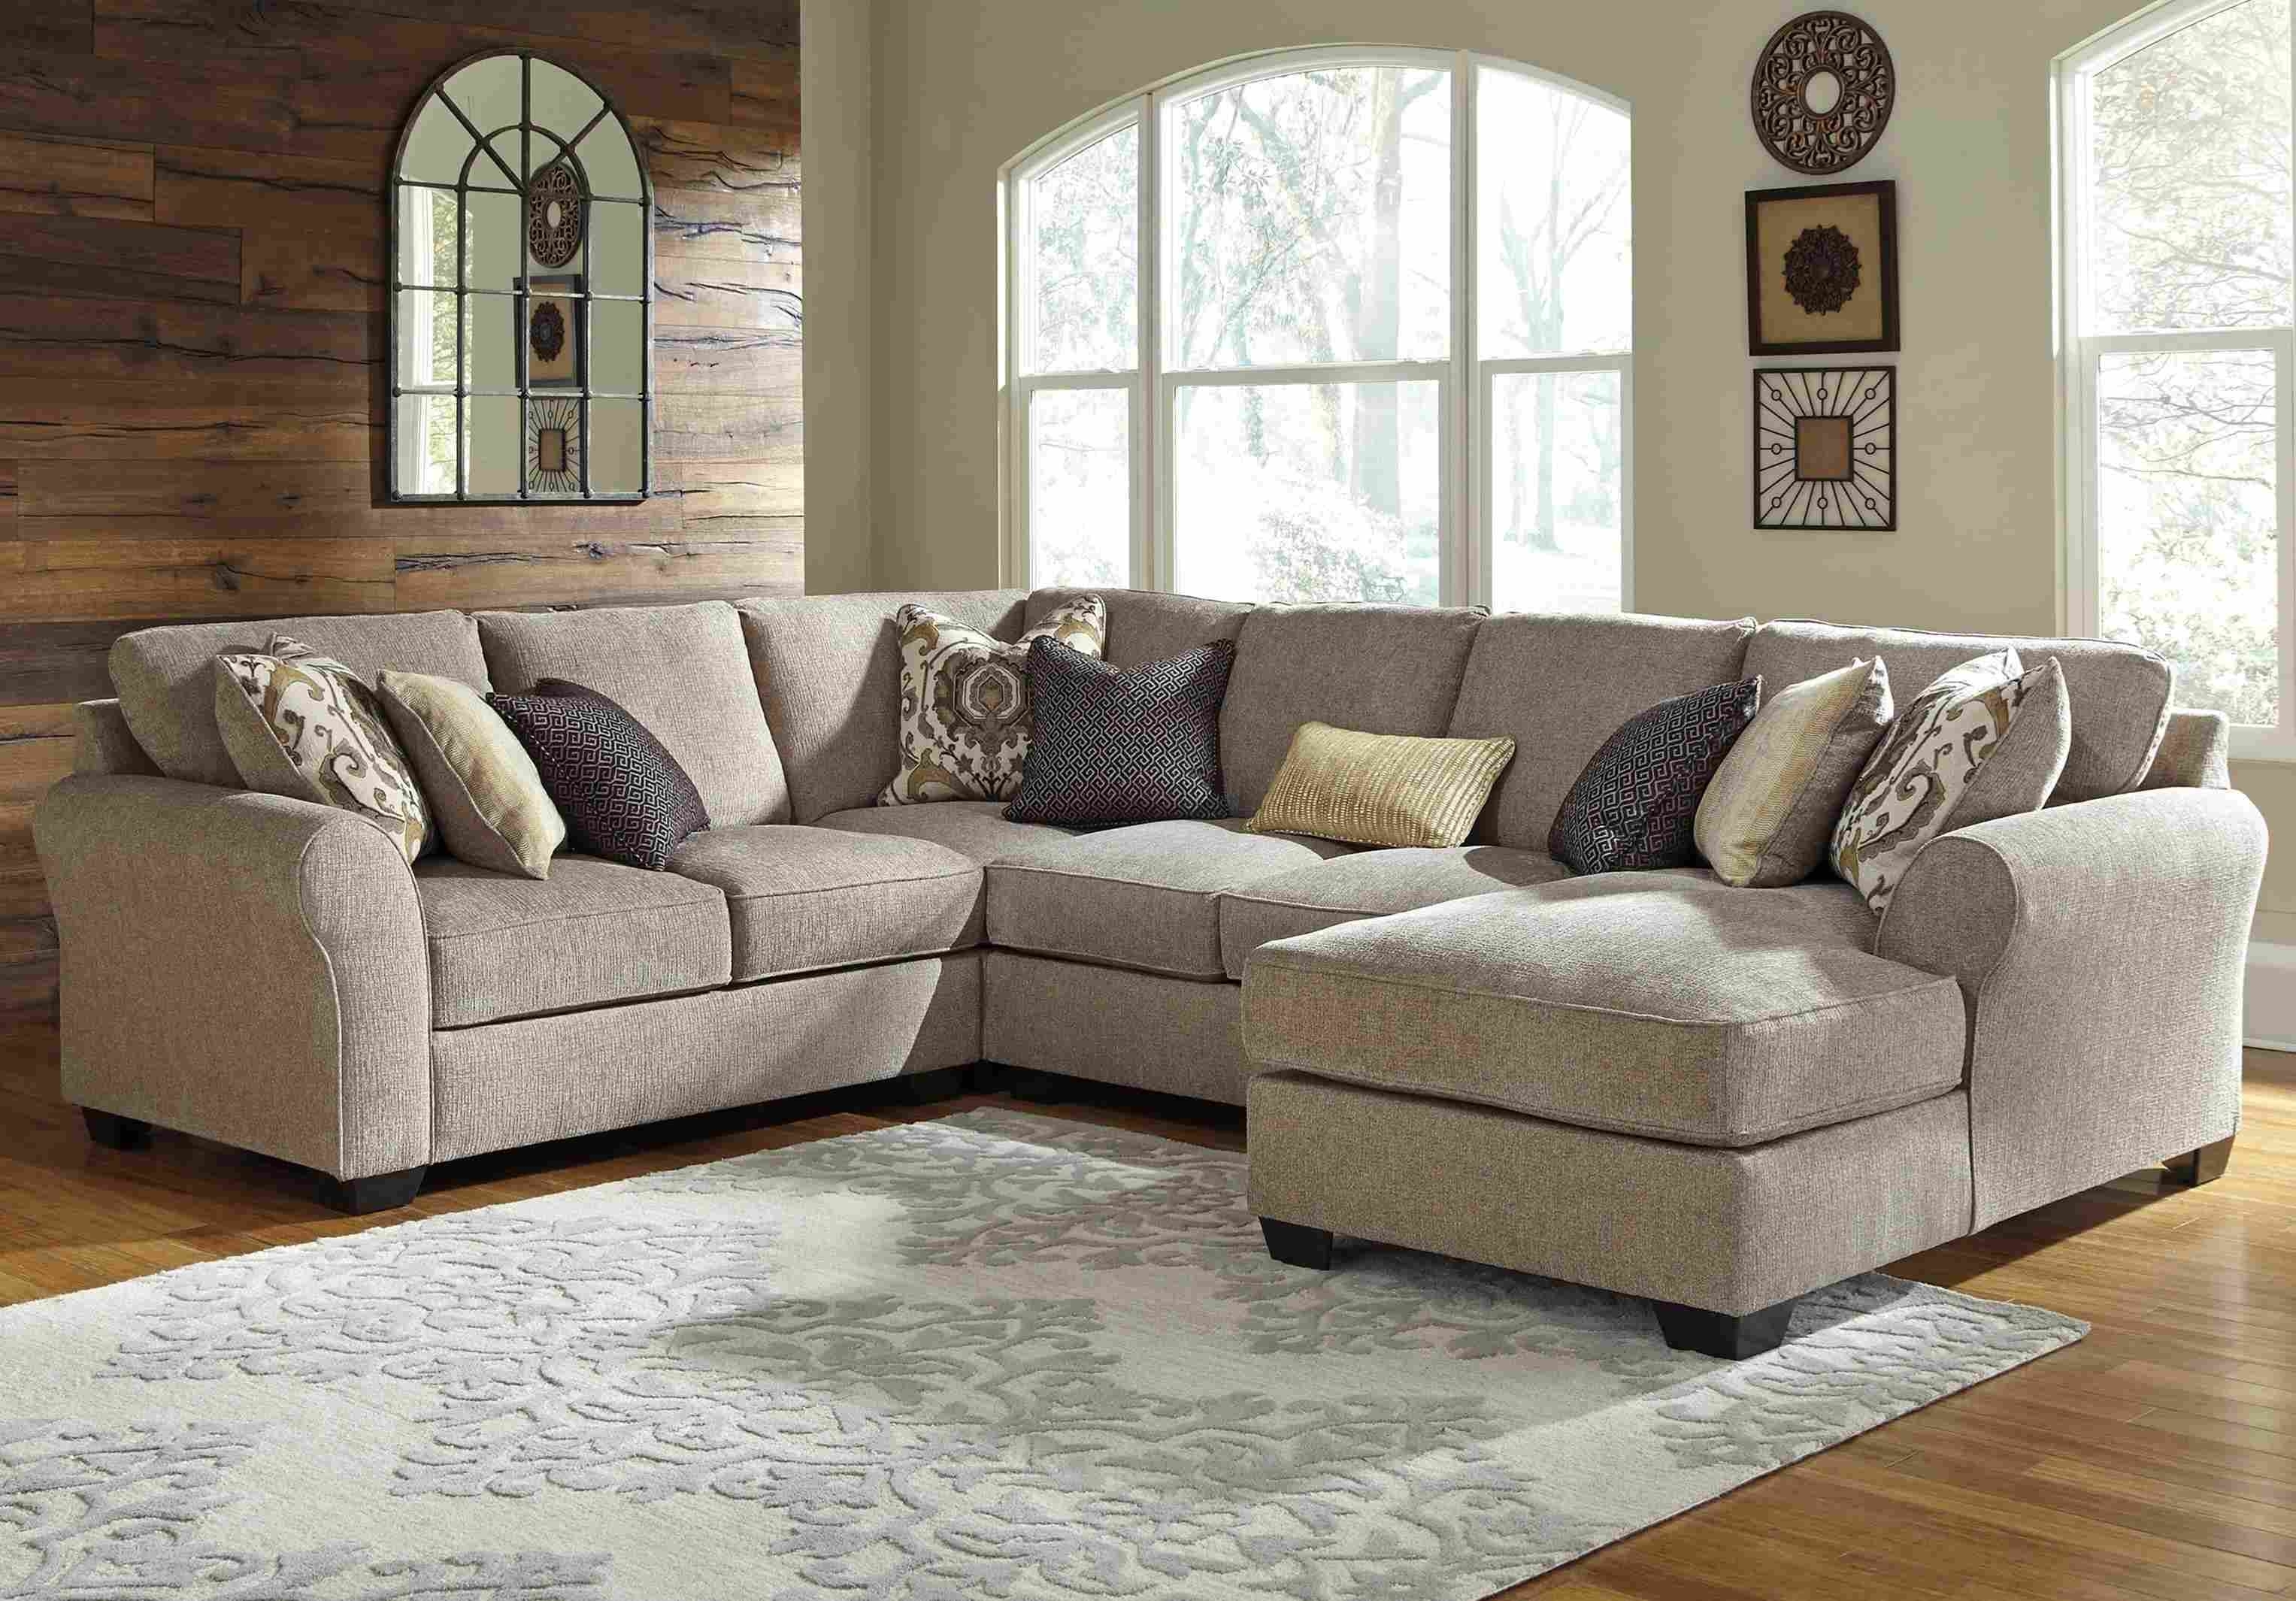 Sofas : Big Sectional Couch Blue Sectional Large Sectional Sectional with Delano 2 Piece Sectionals With Laf Oversized Chaise (Image 30 of 30)